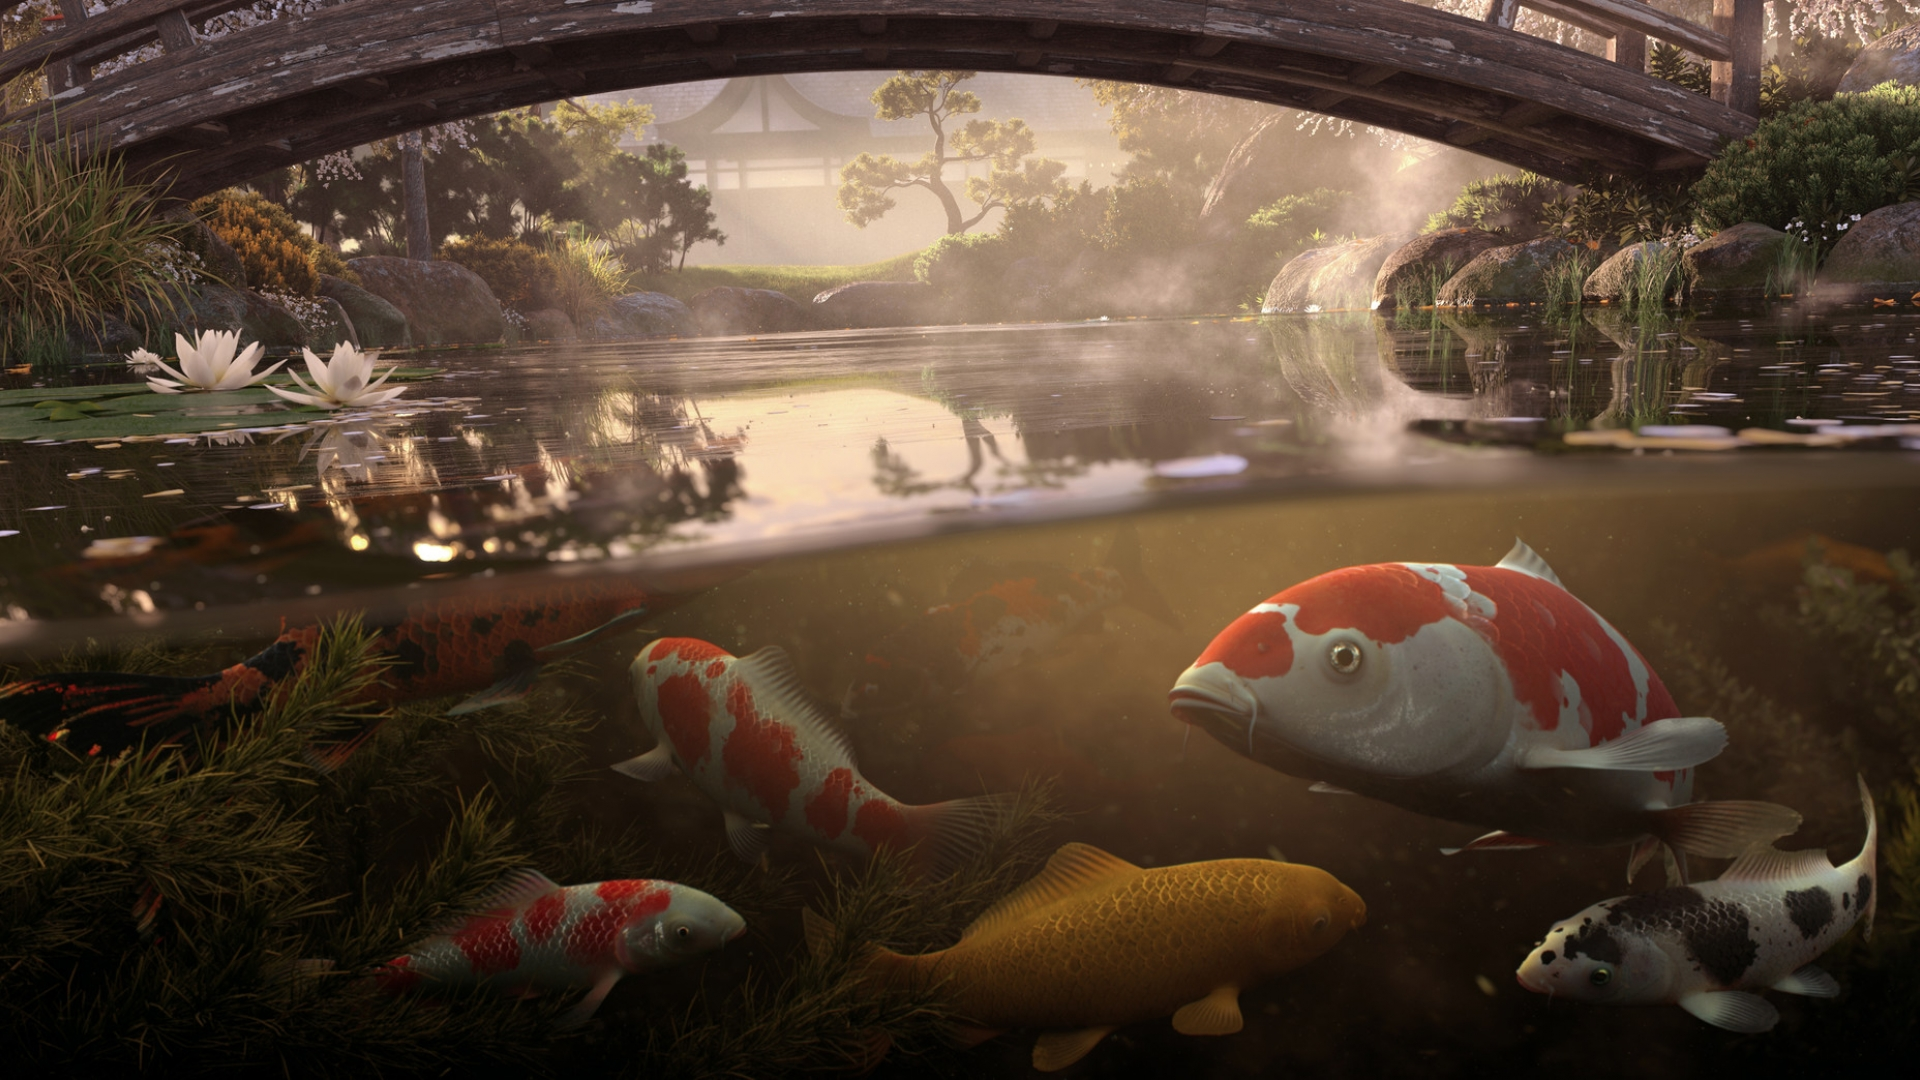 Koi Pond full 3d vfx